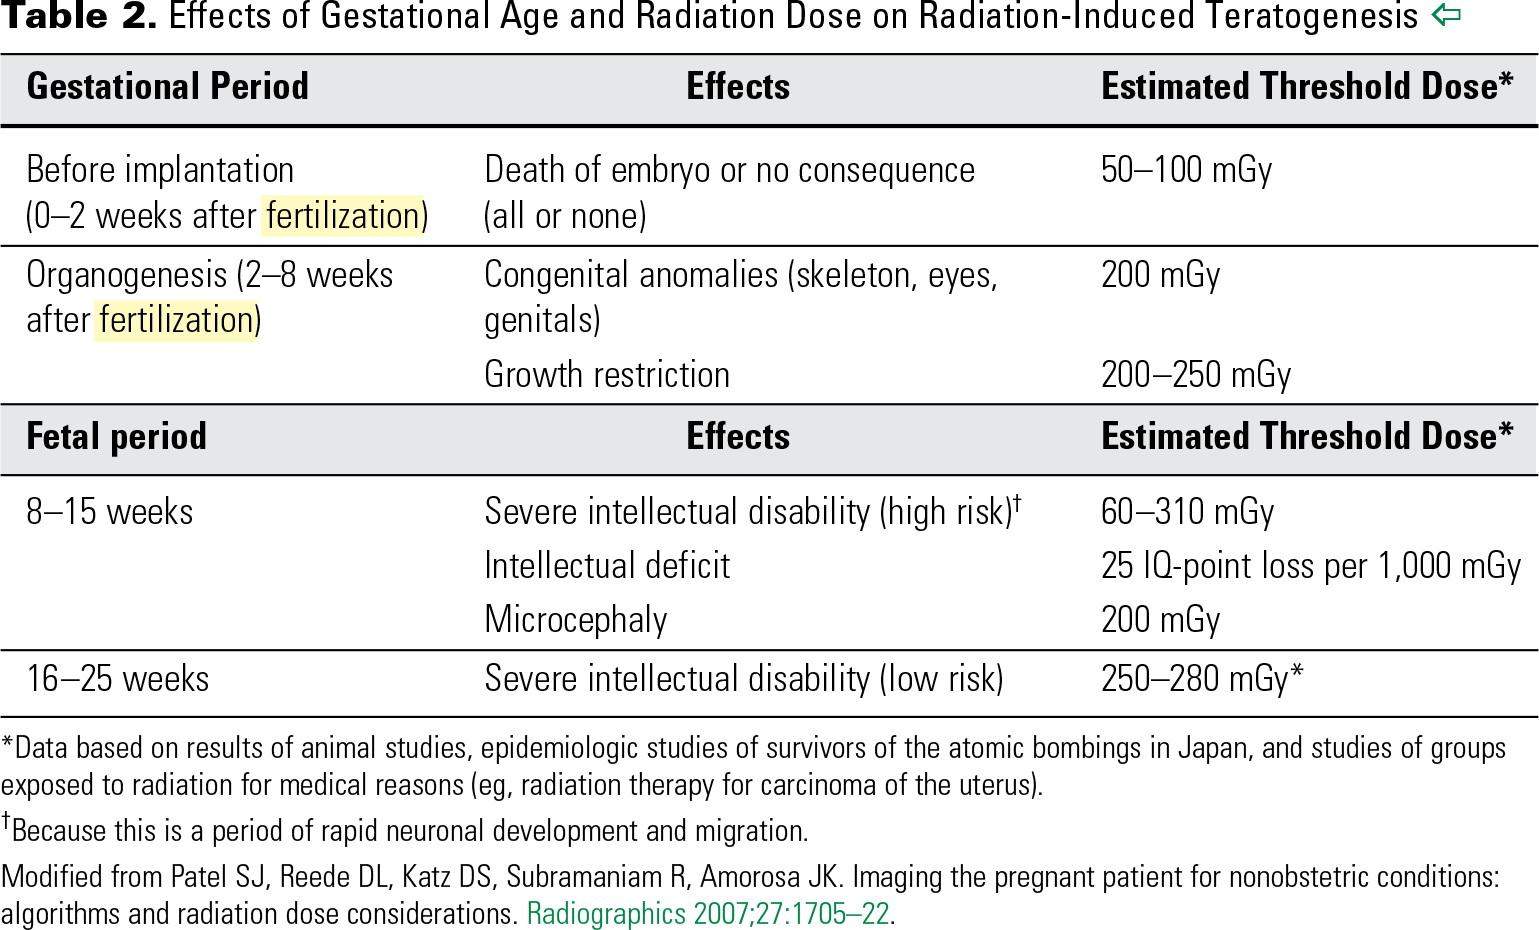 Table 2. Effects of Gestational Age and Radiation Dose on Radiation-Induced Teratogenesis